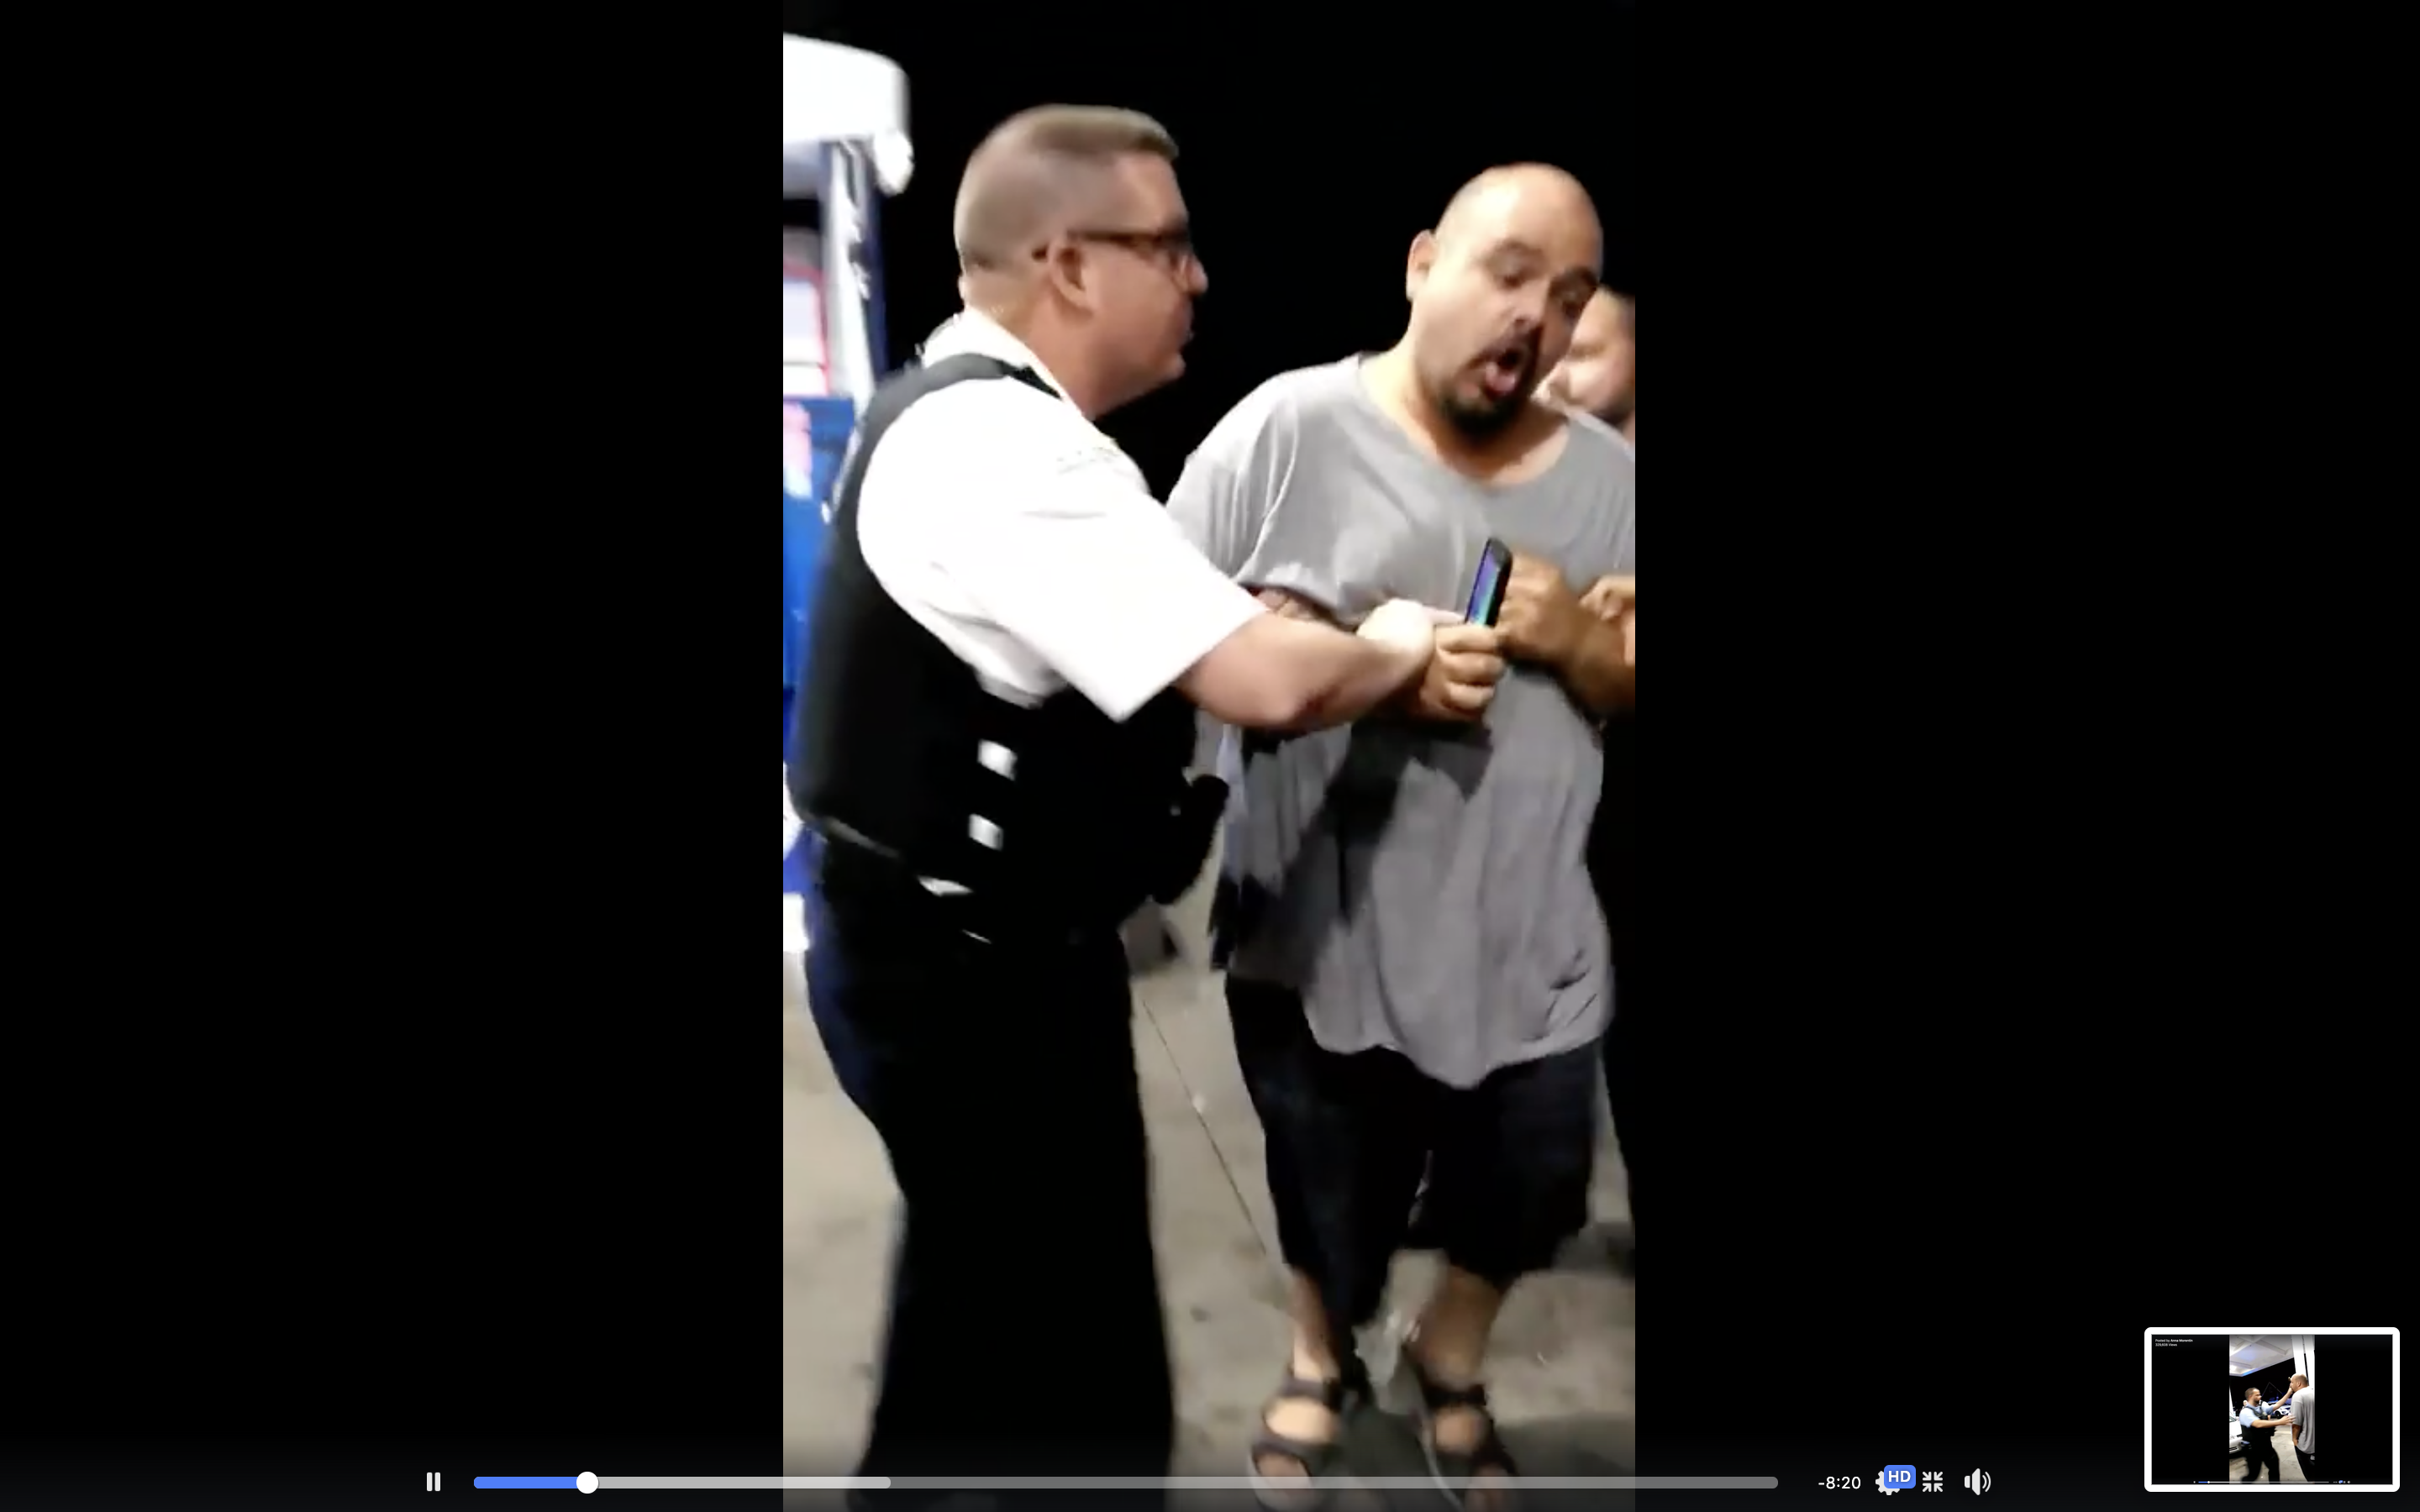 A video screengrab shows a Chicago police officer and Angel Ramirez at a gas station in Little Village. Ramirez was sprayed with pepper spray and twice tased by police.